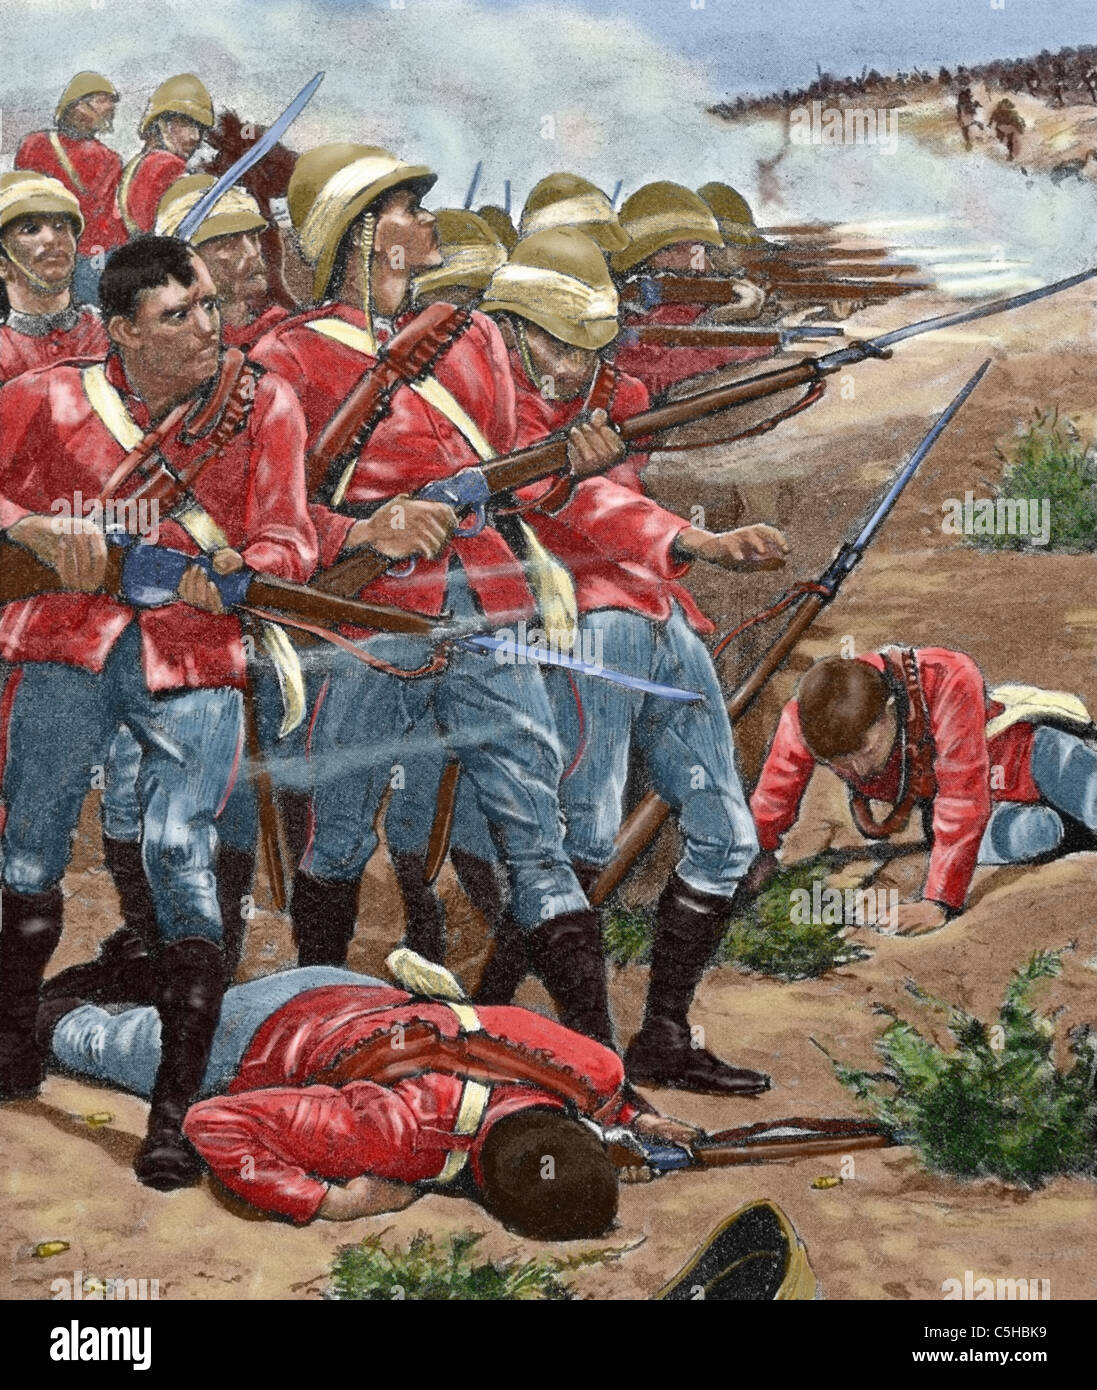 British imperialism. Sudan. Africa. English army attacking. Colored engraving, 1898. - Stock Image